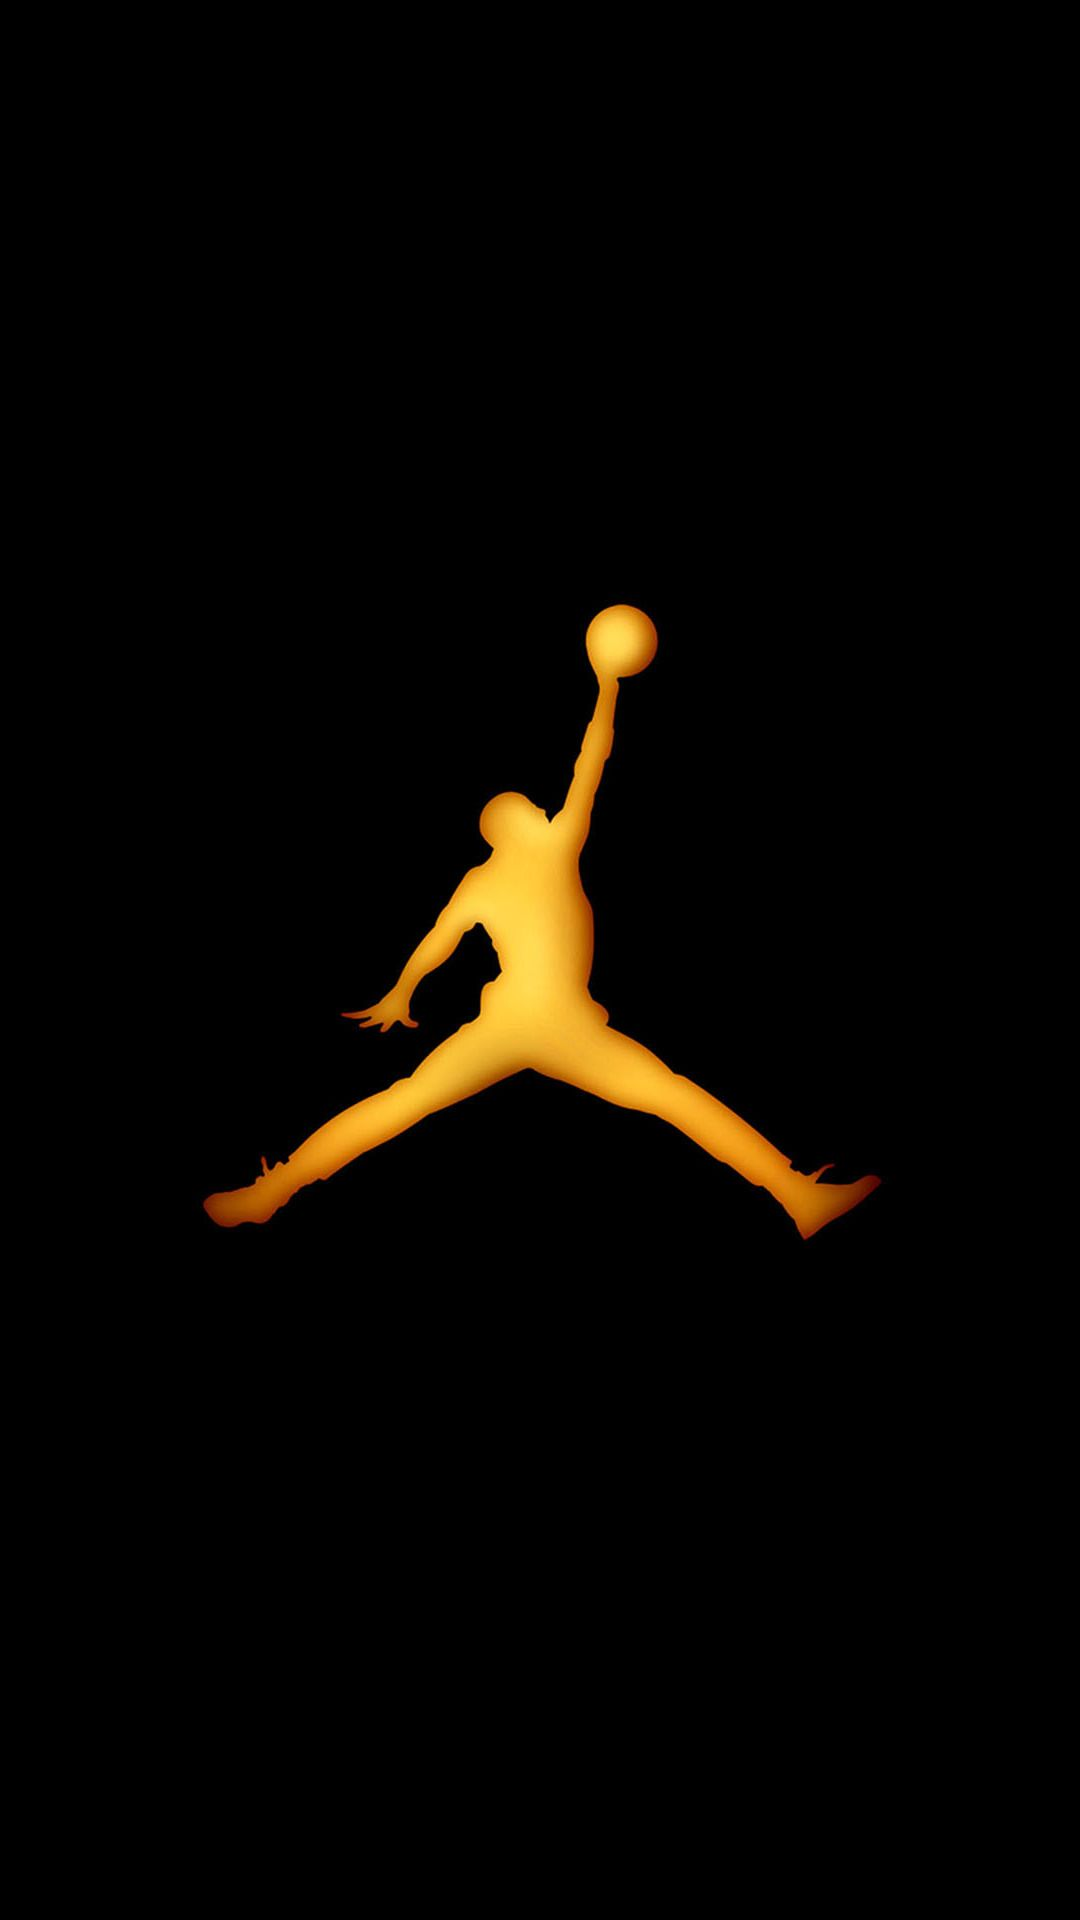 Basketball Sport Layup Outline iPhone 7 wallpaper iPhone 8 1080x1920